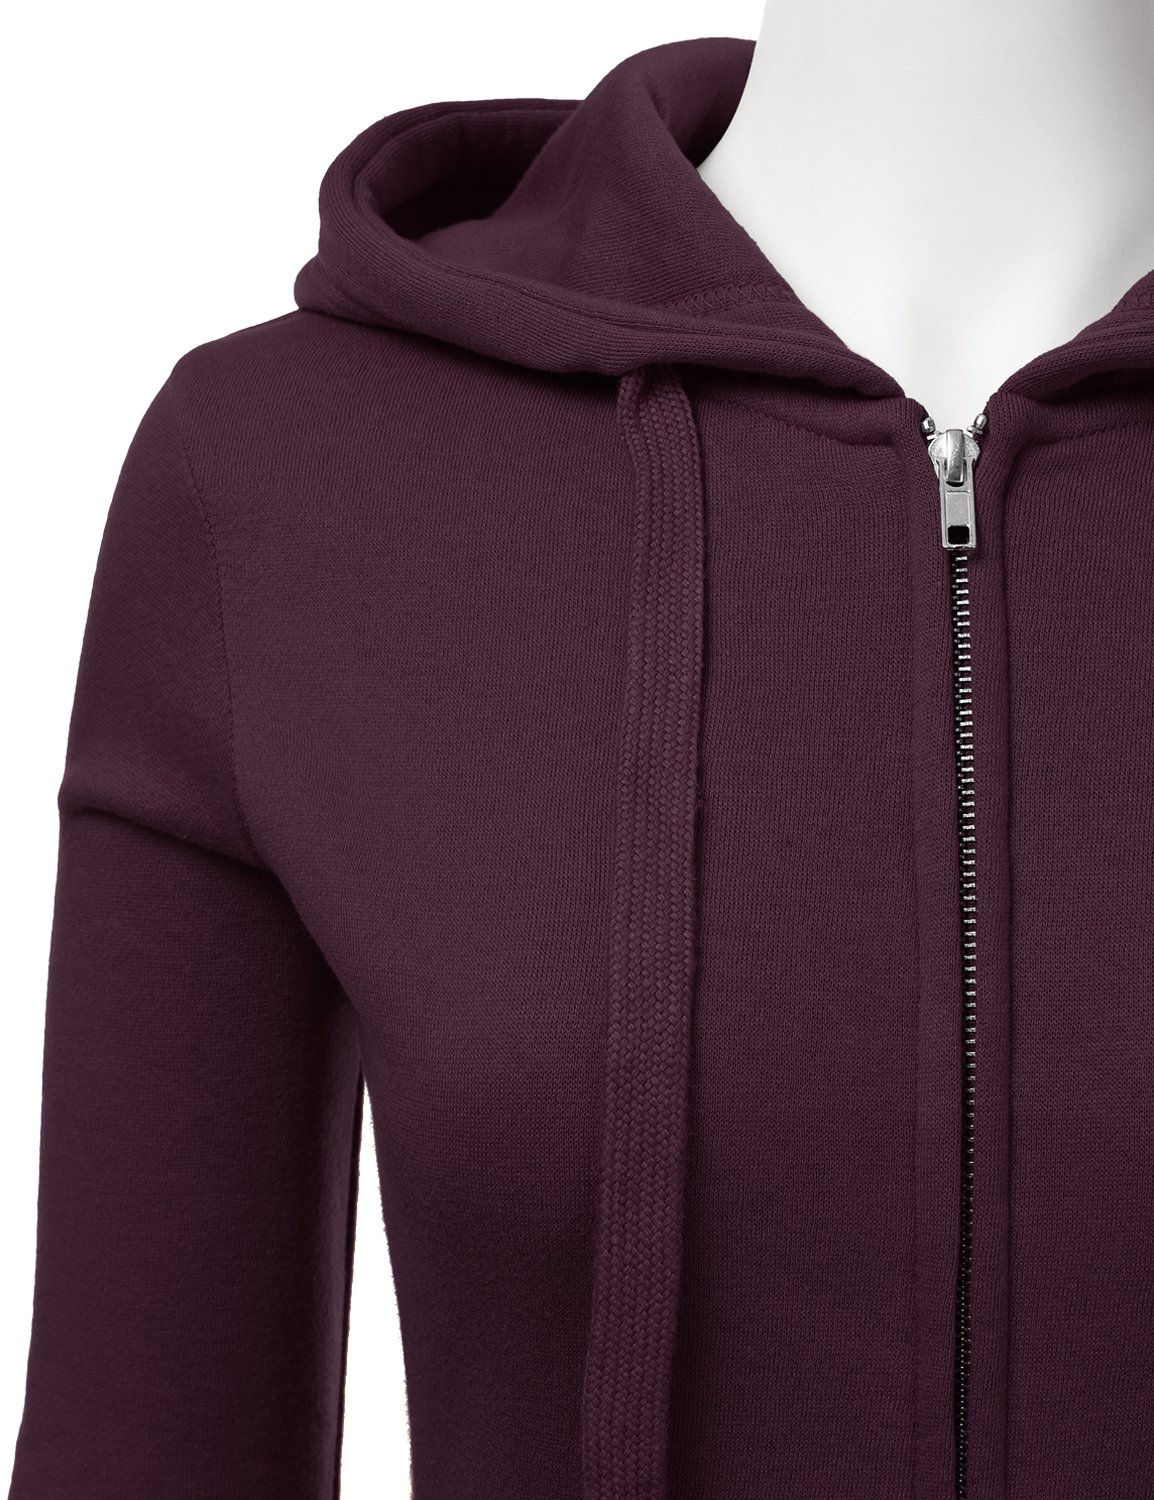 Doublju Lightweight Thin Zip-Up Hoodie Jacket for Women with Plus Size Plum Large by Doublju (Image #4)